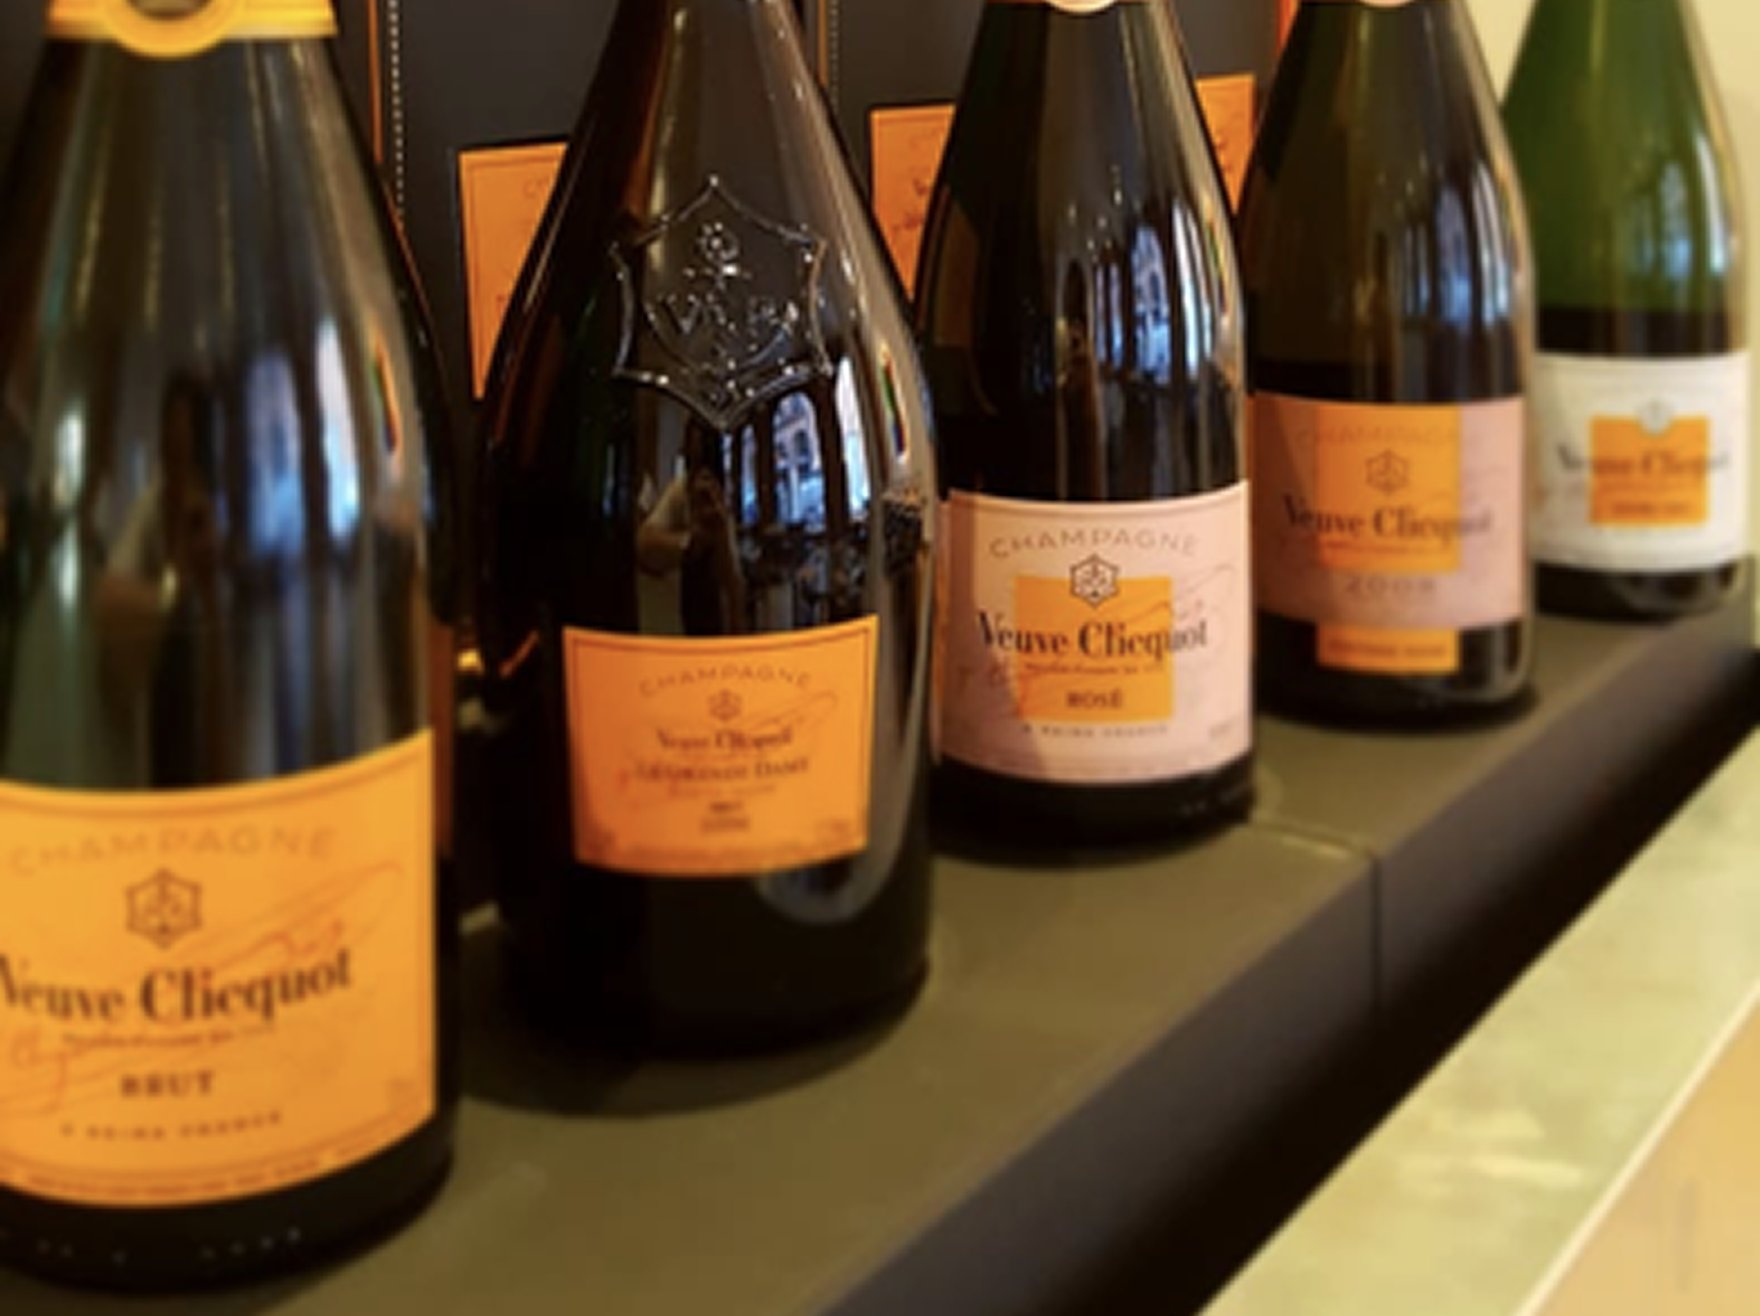 James St. Hosts Veuve Cliquot 200th Anniversary Dinner